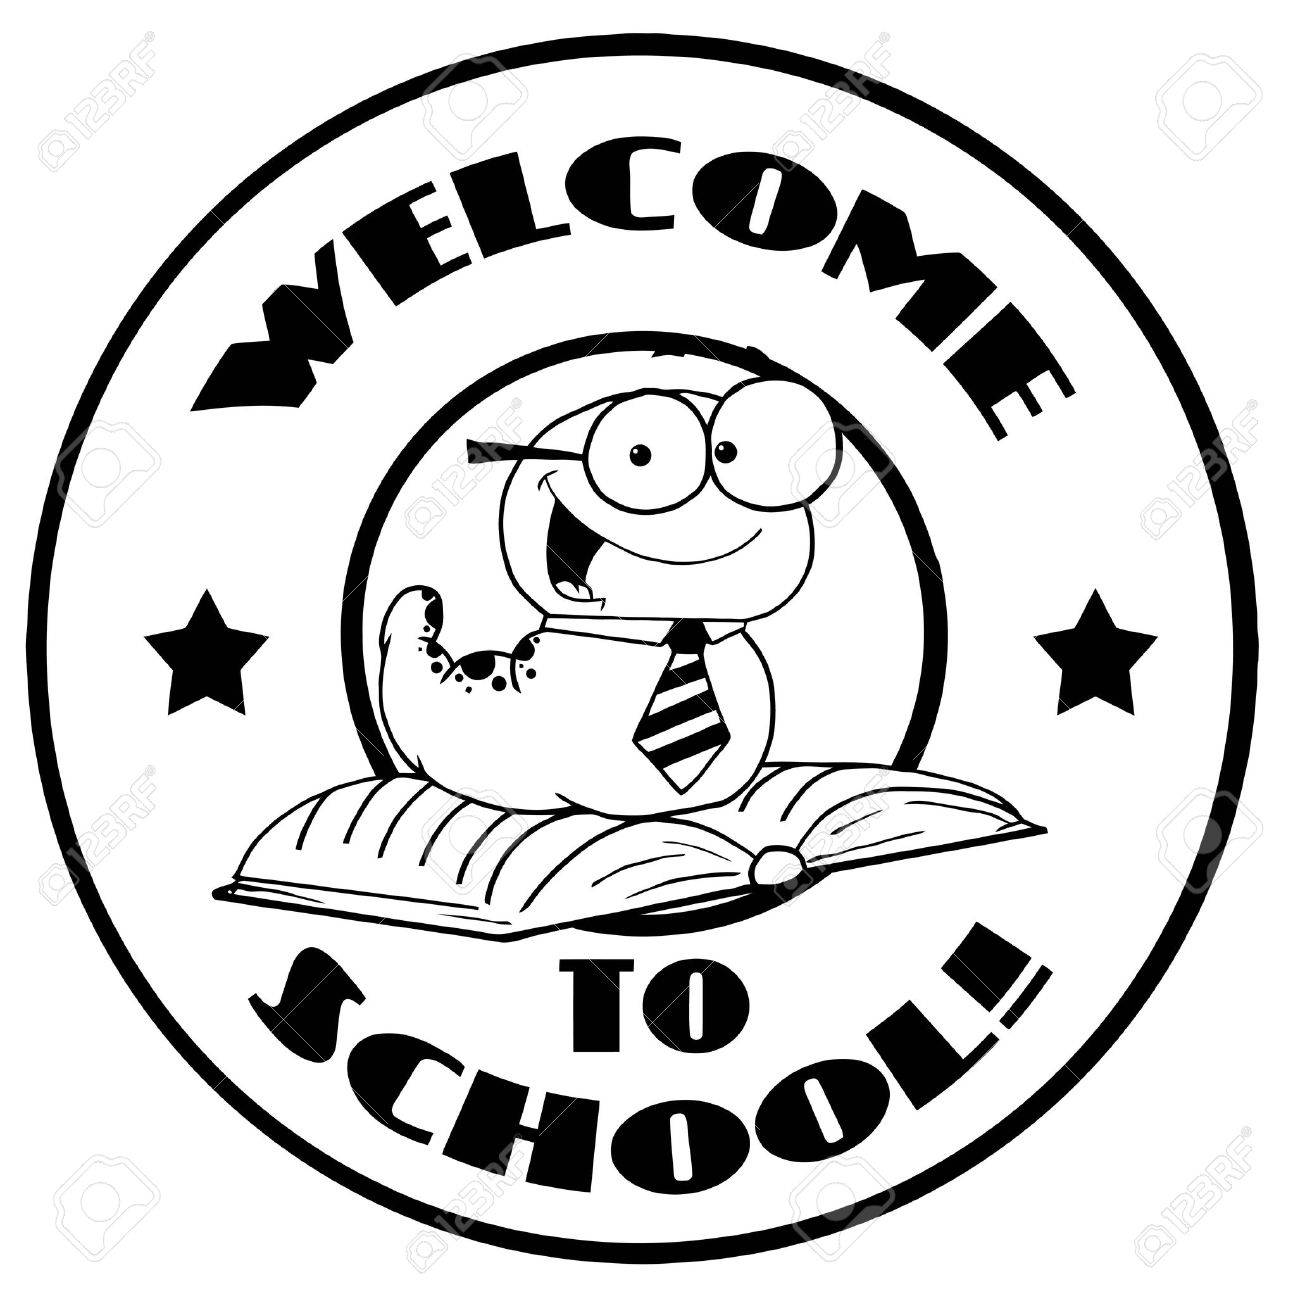 black and white worm on a welcome back to school circle royalty free rh 123rf com clipart welcome back to school welcome back to school clip art free